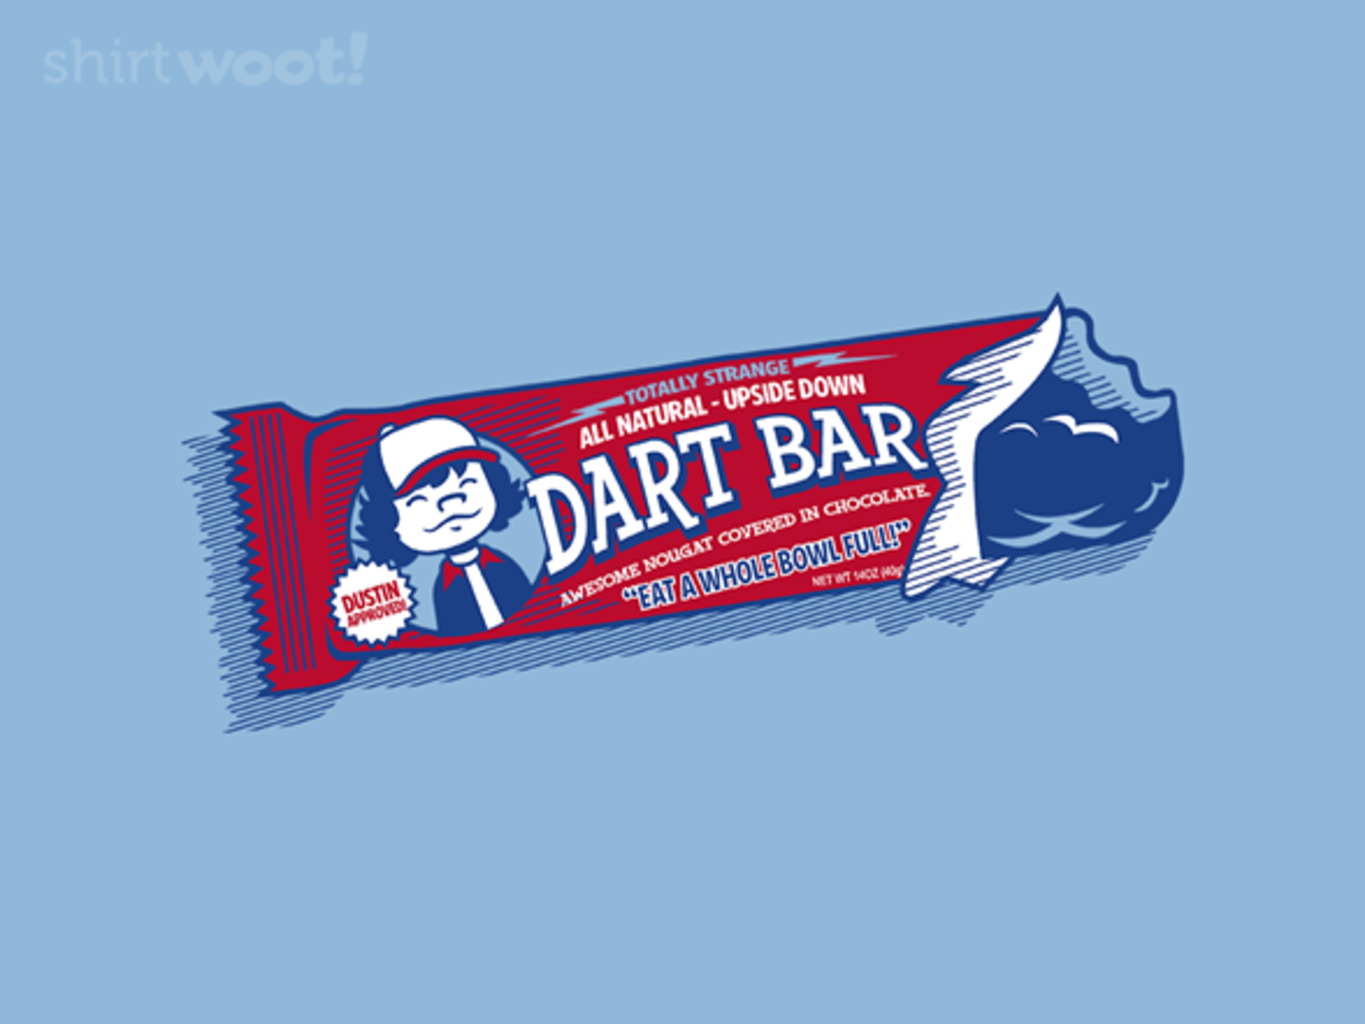 Woot!: Strange Dart Bar